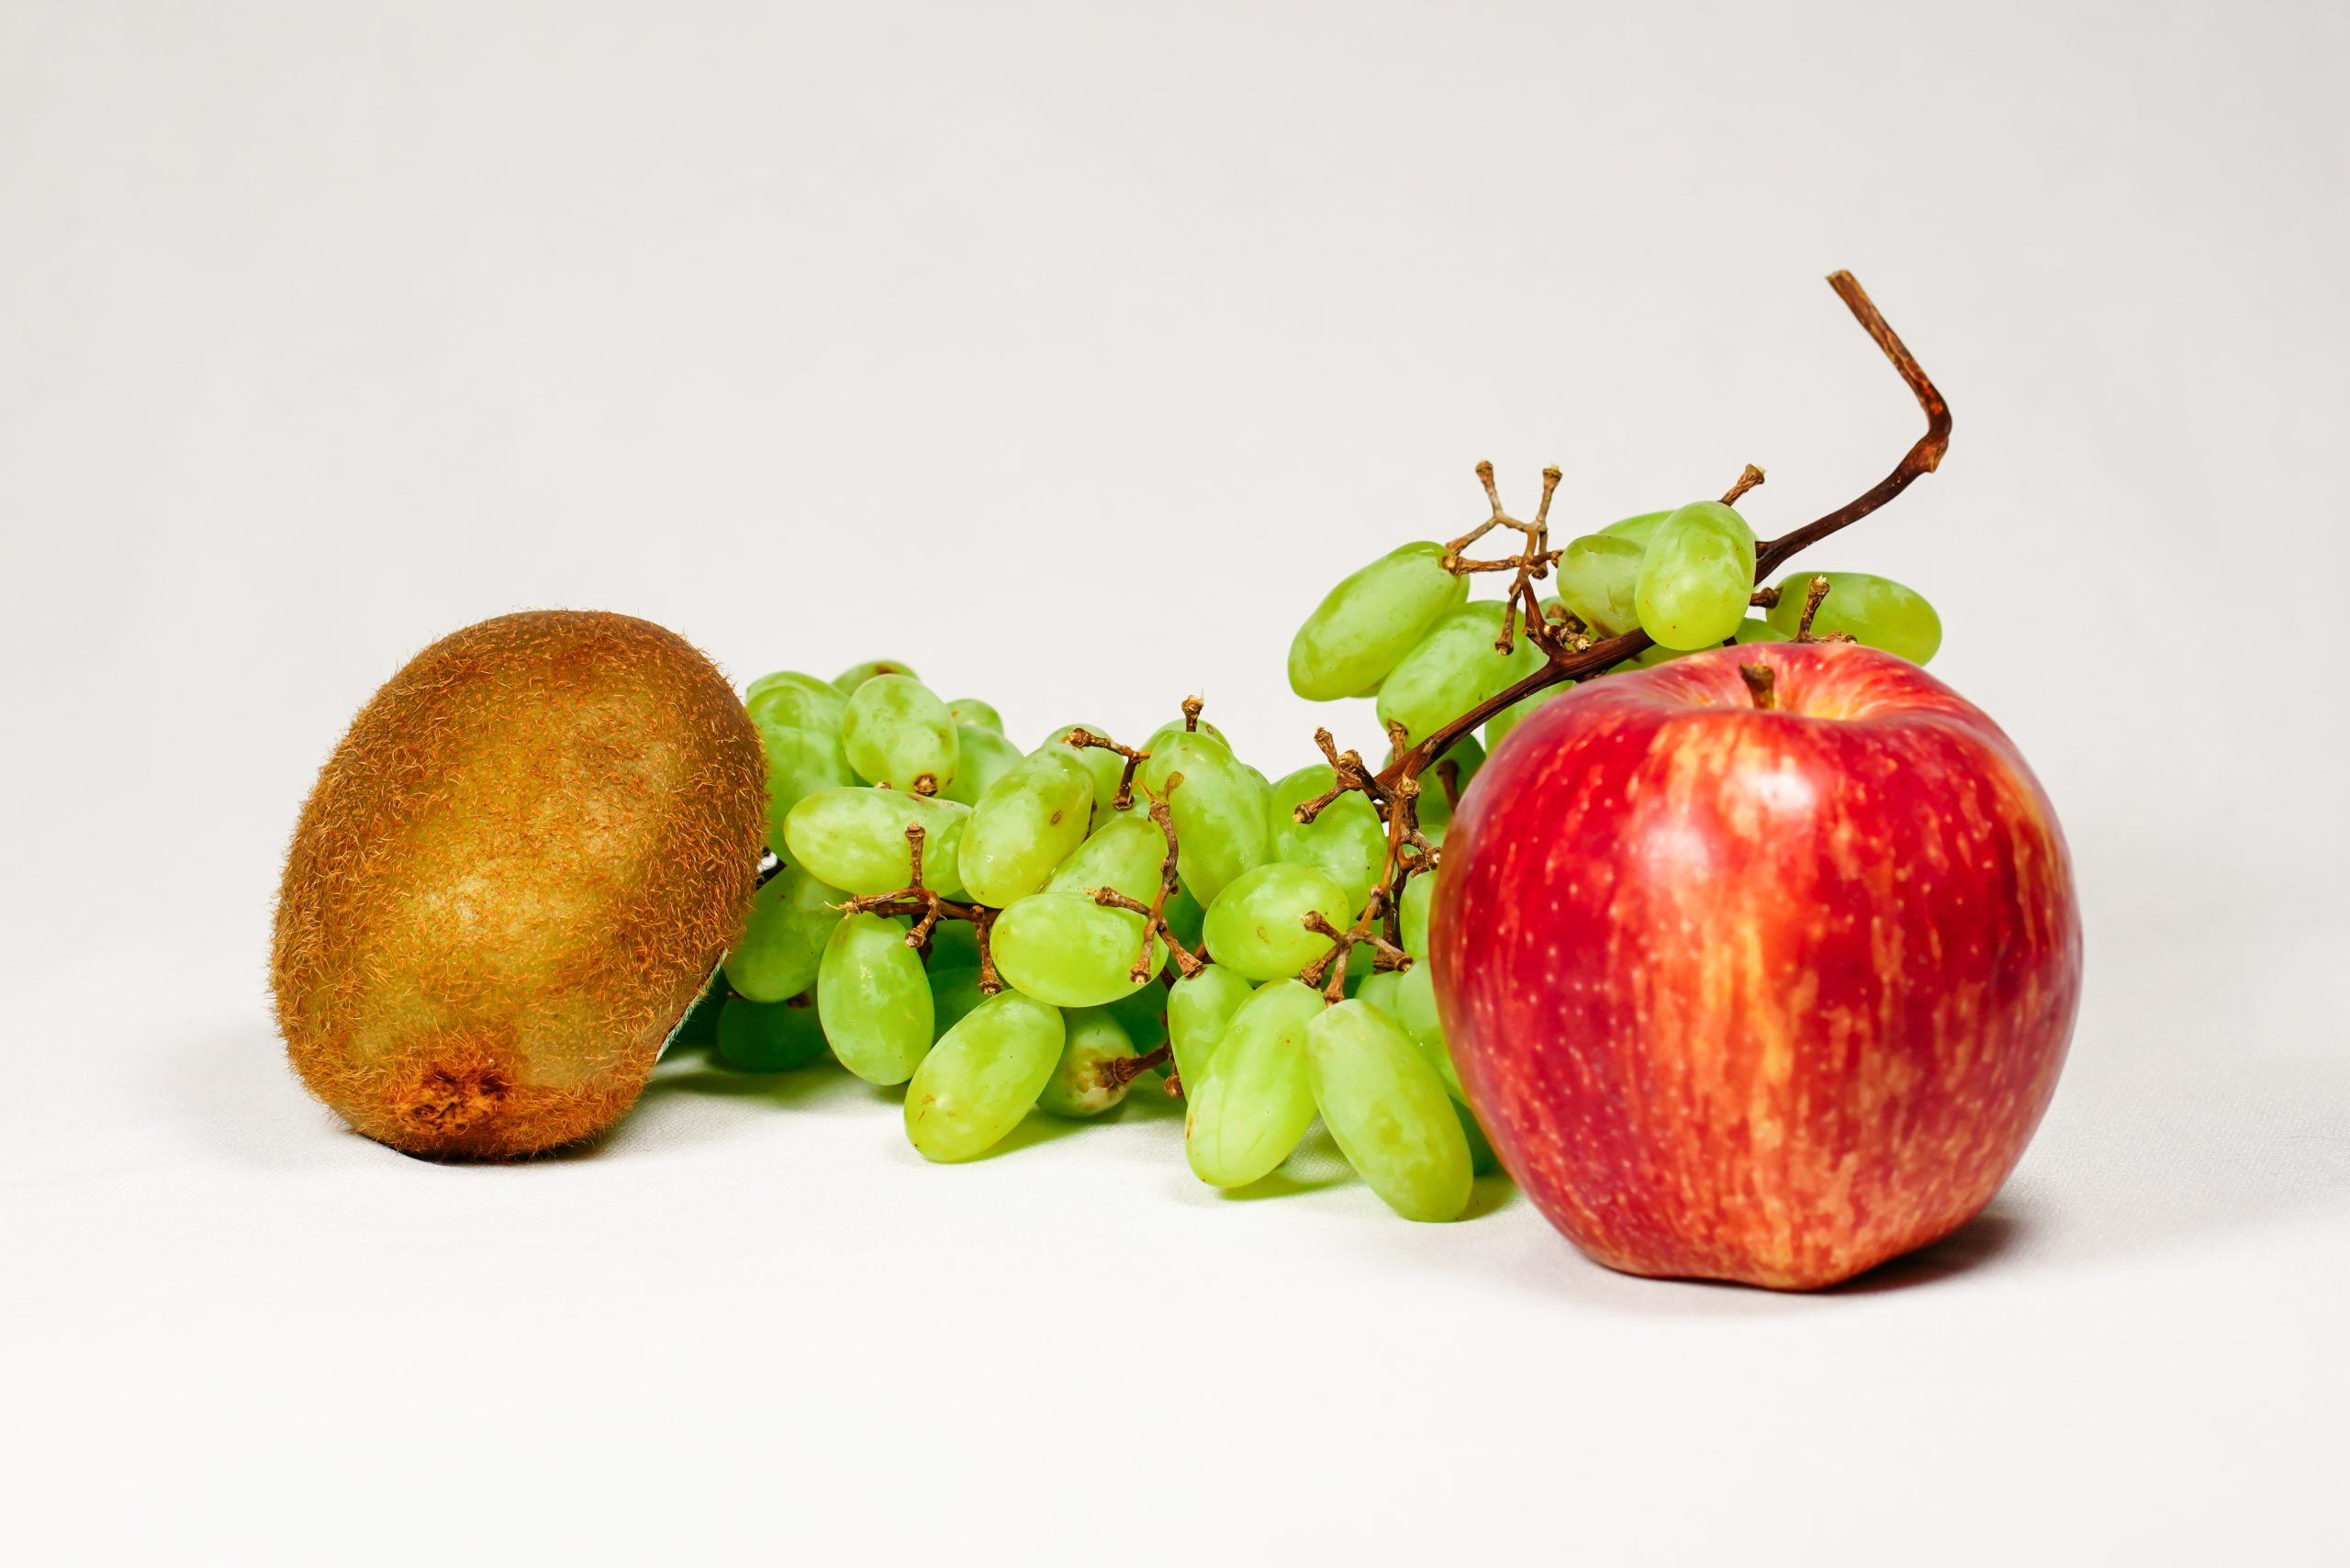 Grapes, kiwi and apple in white background